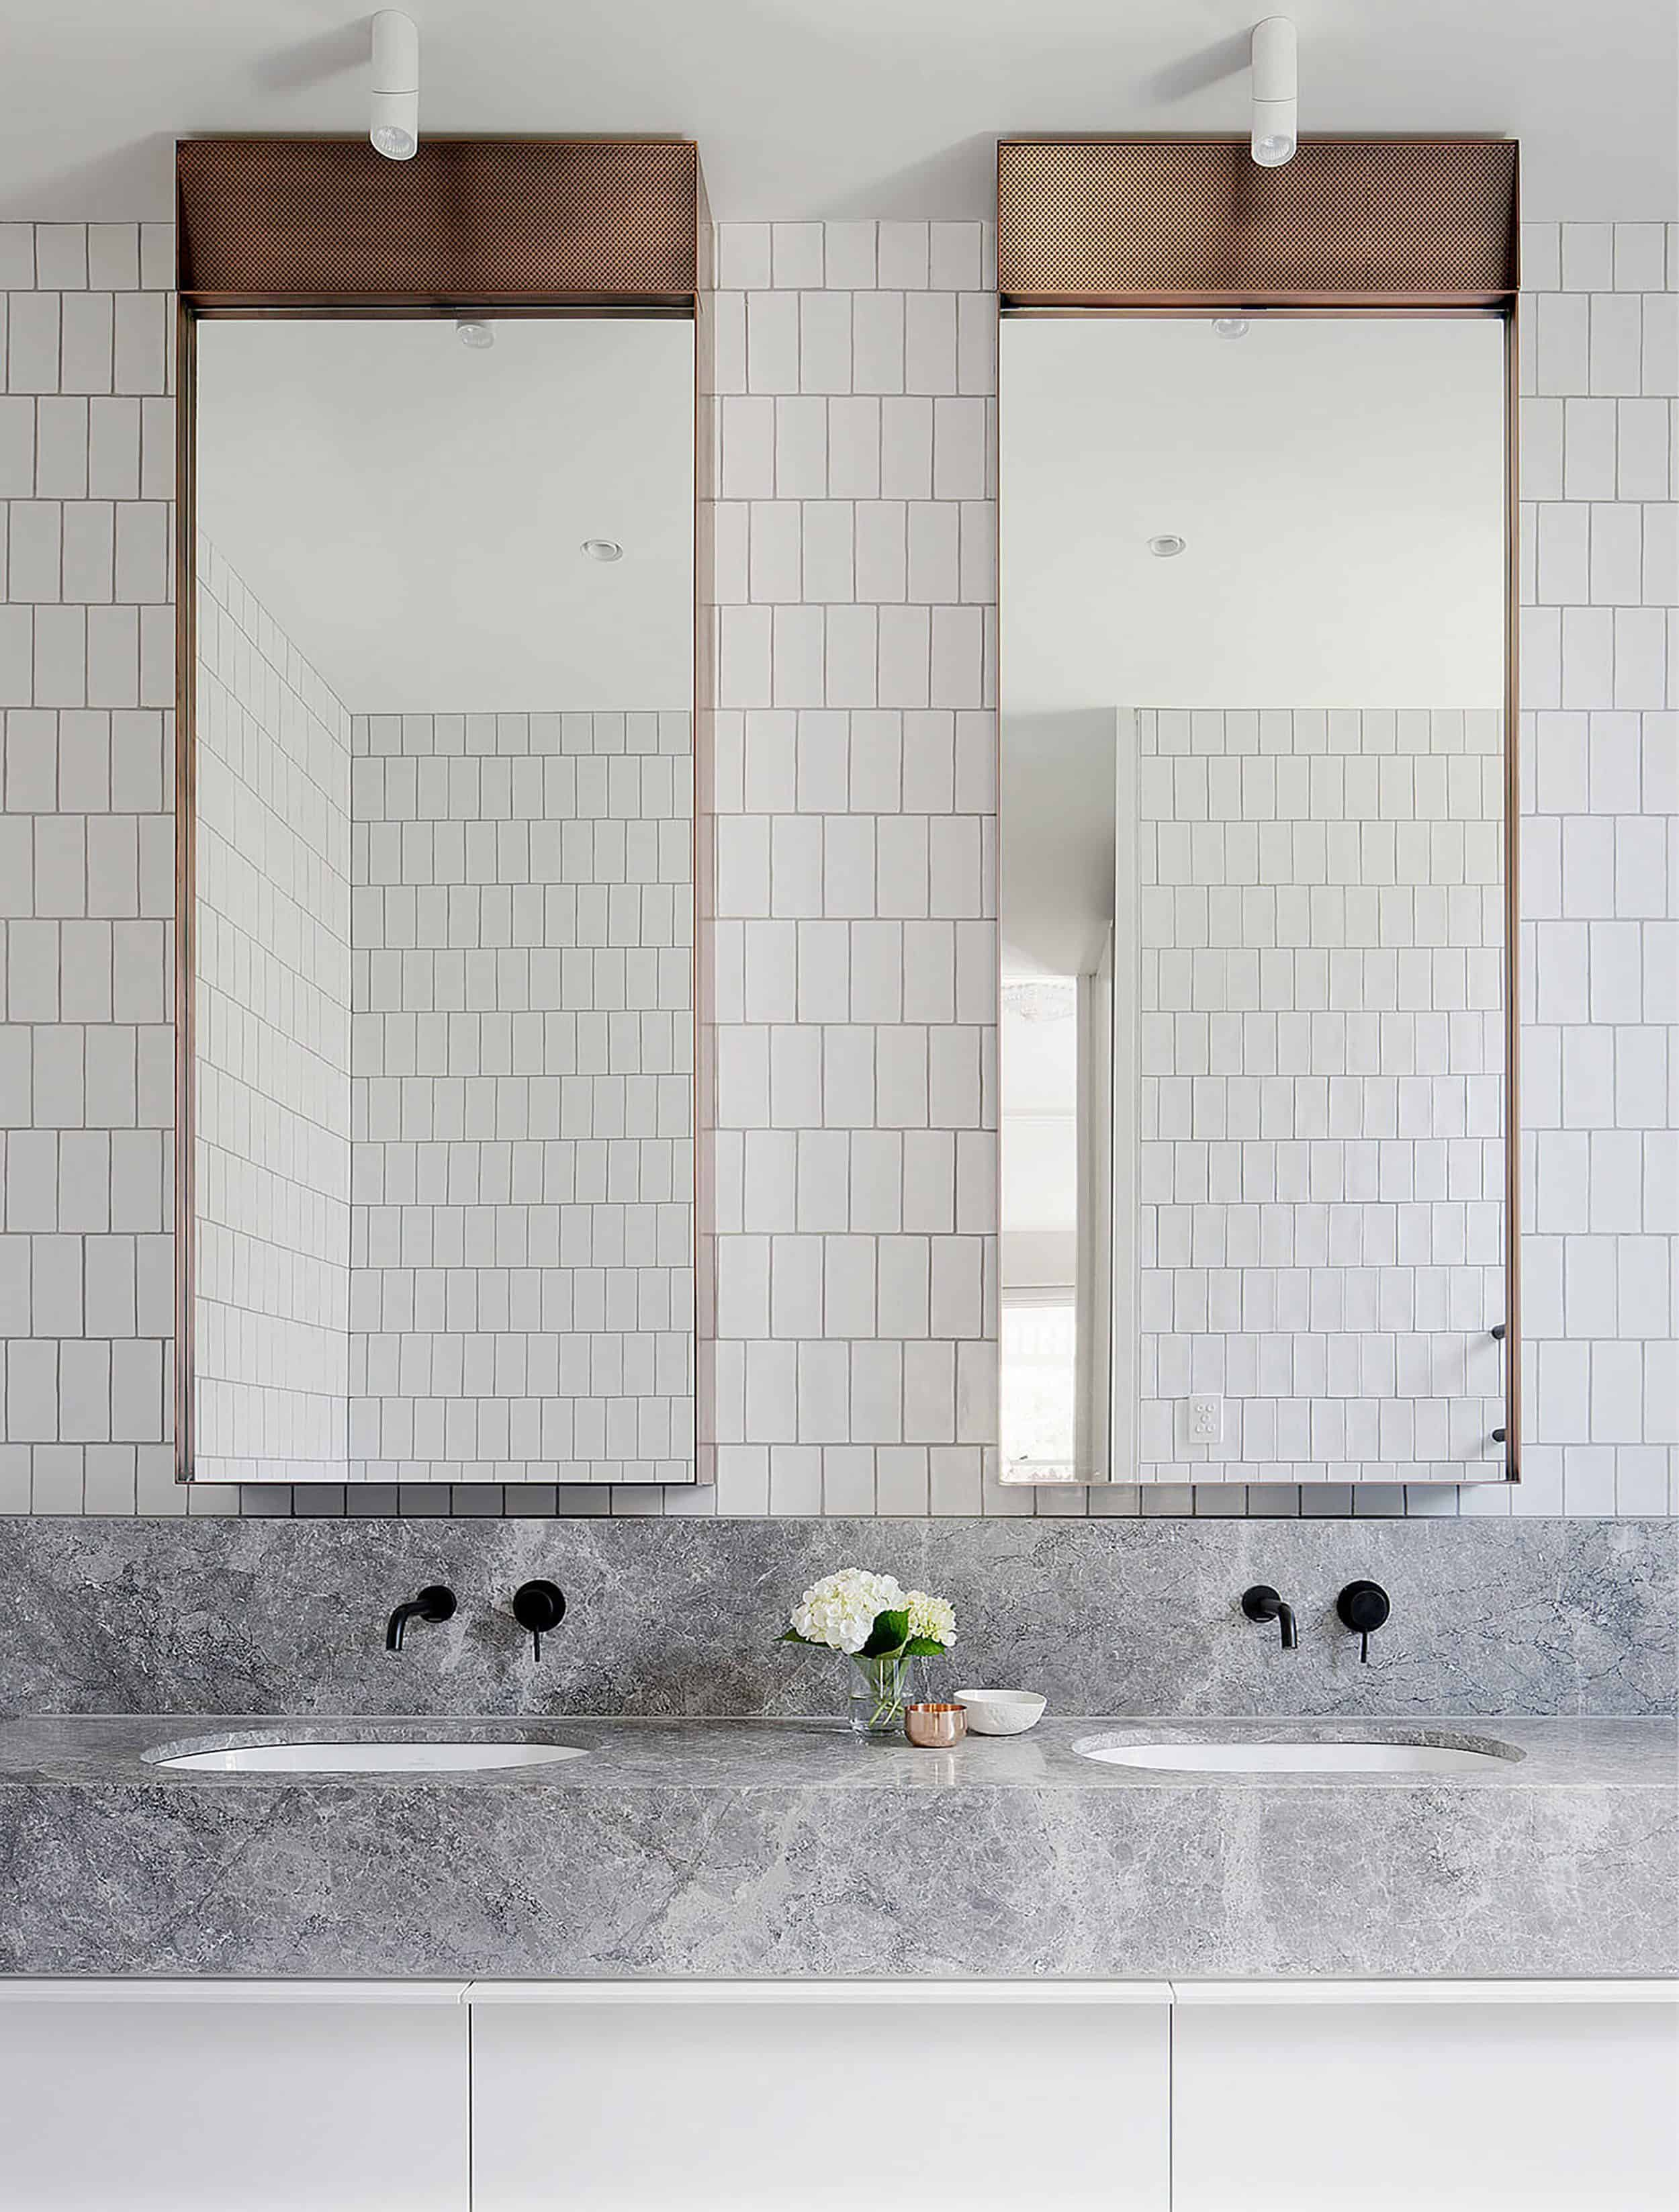 17 Fresh Inspiring Bathroom Mirror Ideas To Shake Up Your Morning Lipstick Routine